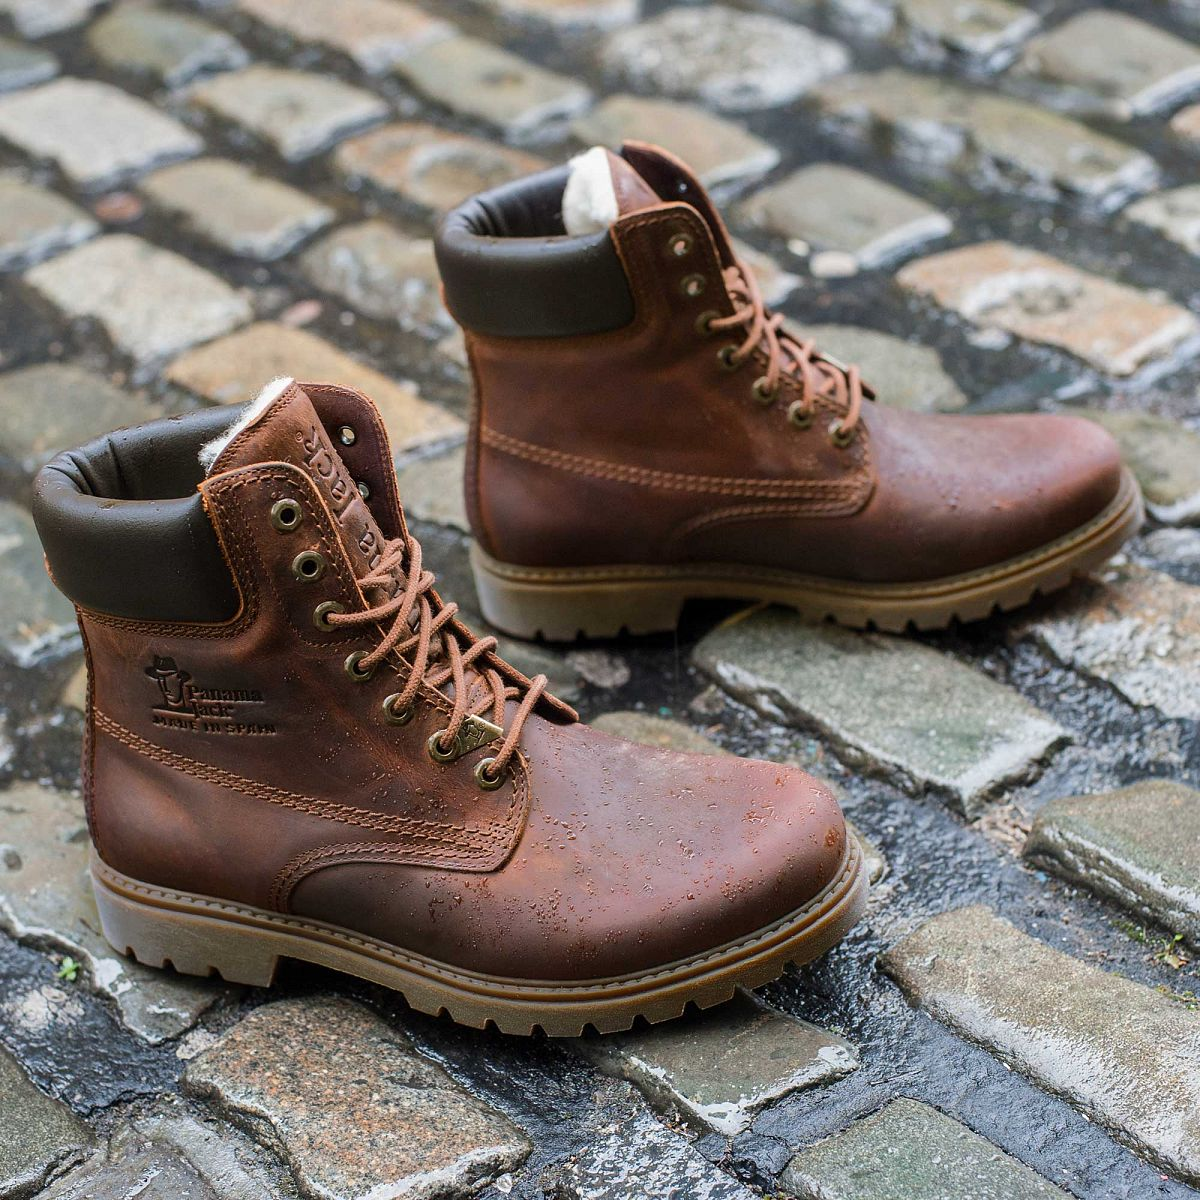 Mens Boot Panama 03 Wool Natural Jack Official Store D Island Shoes Hikers Boots Fashionable Brown Leather With A Woolen Lining